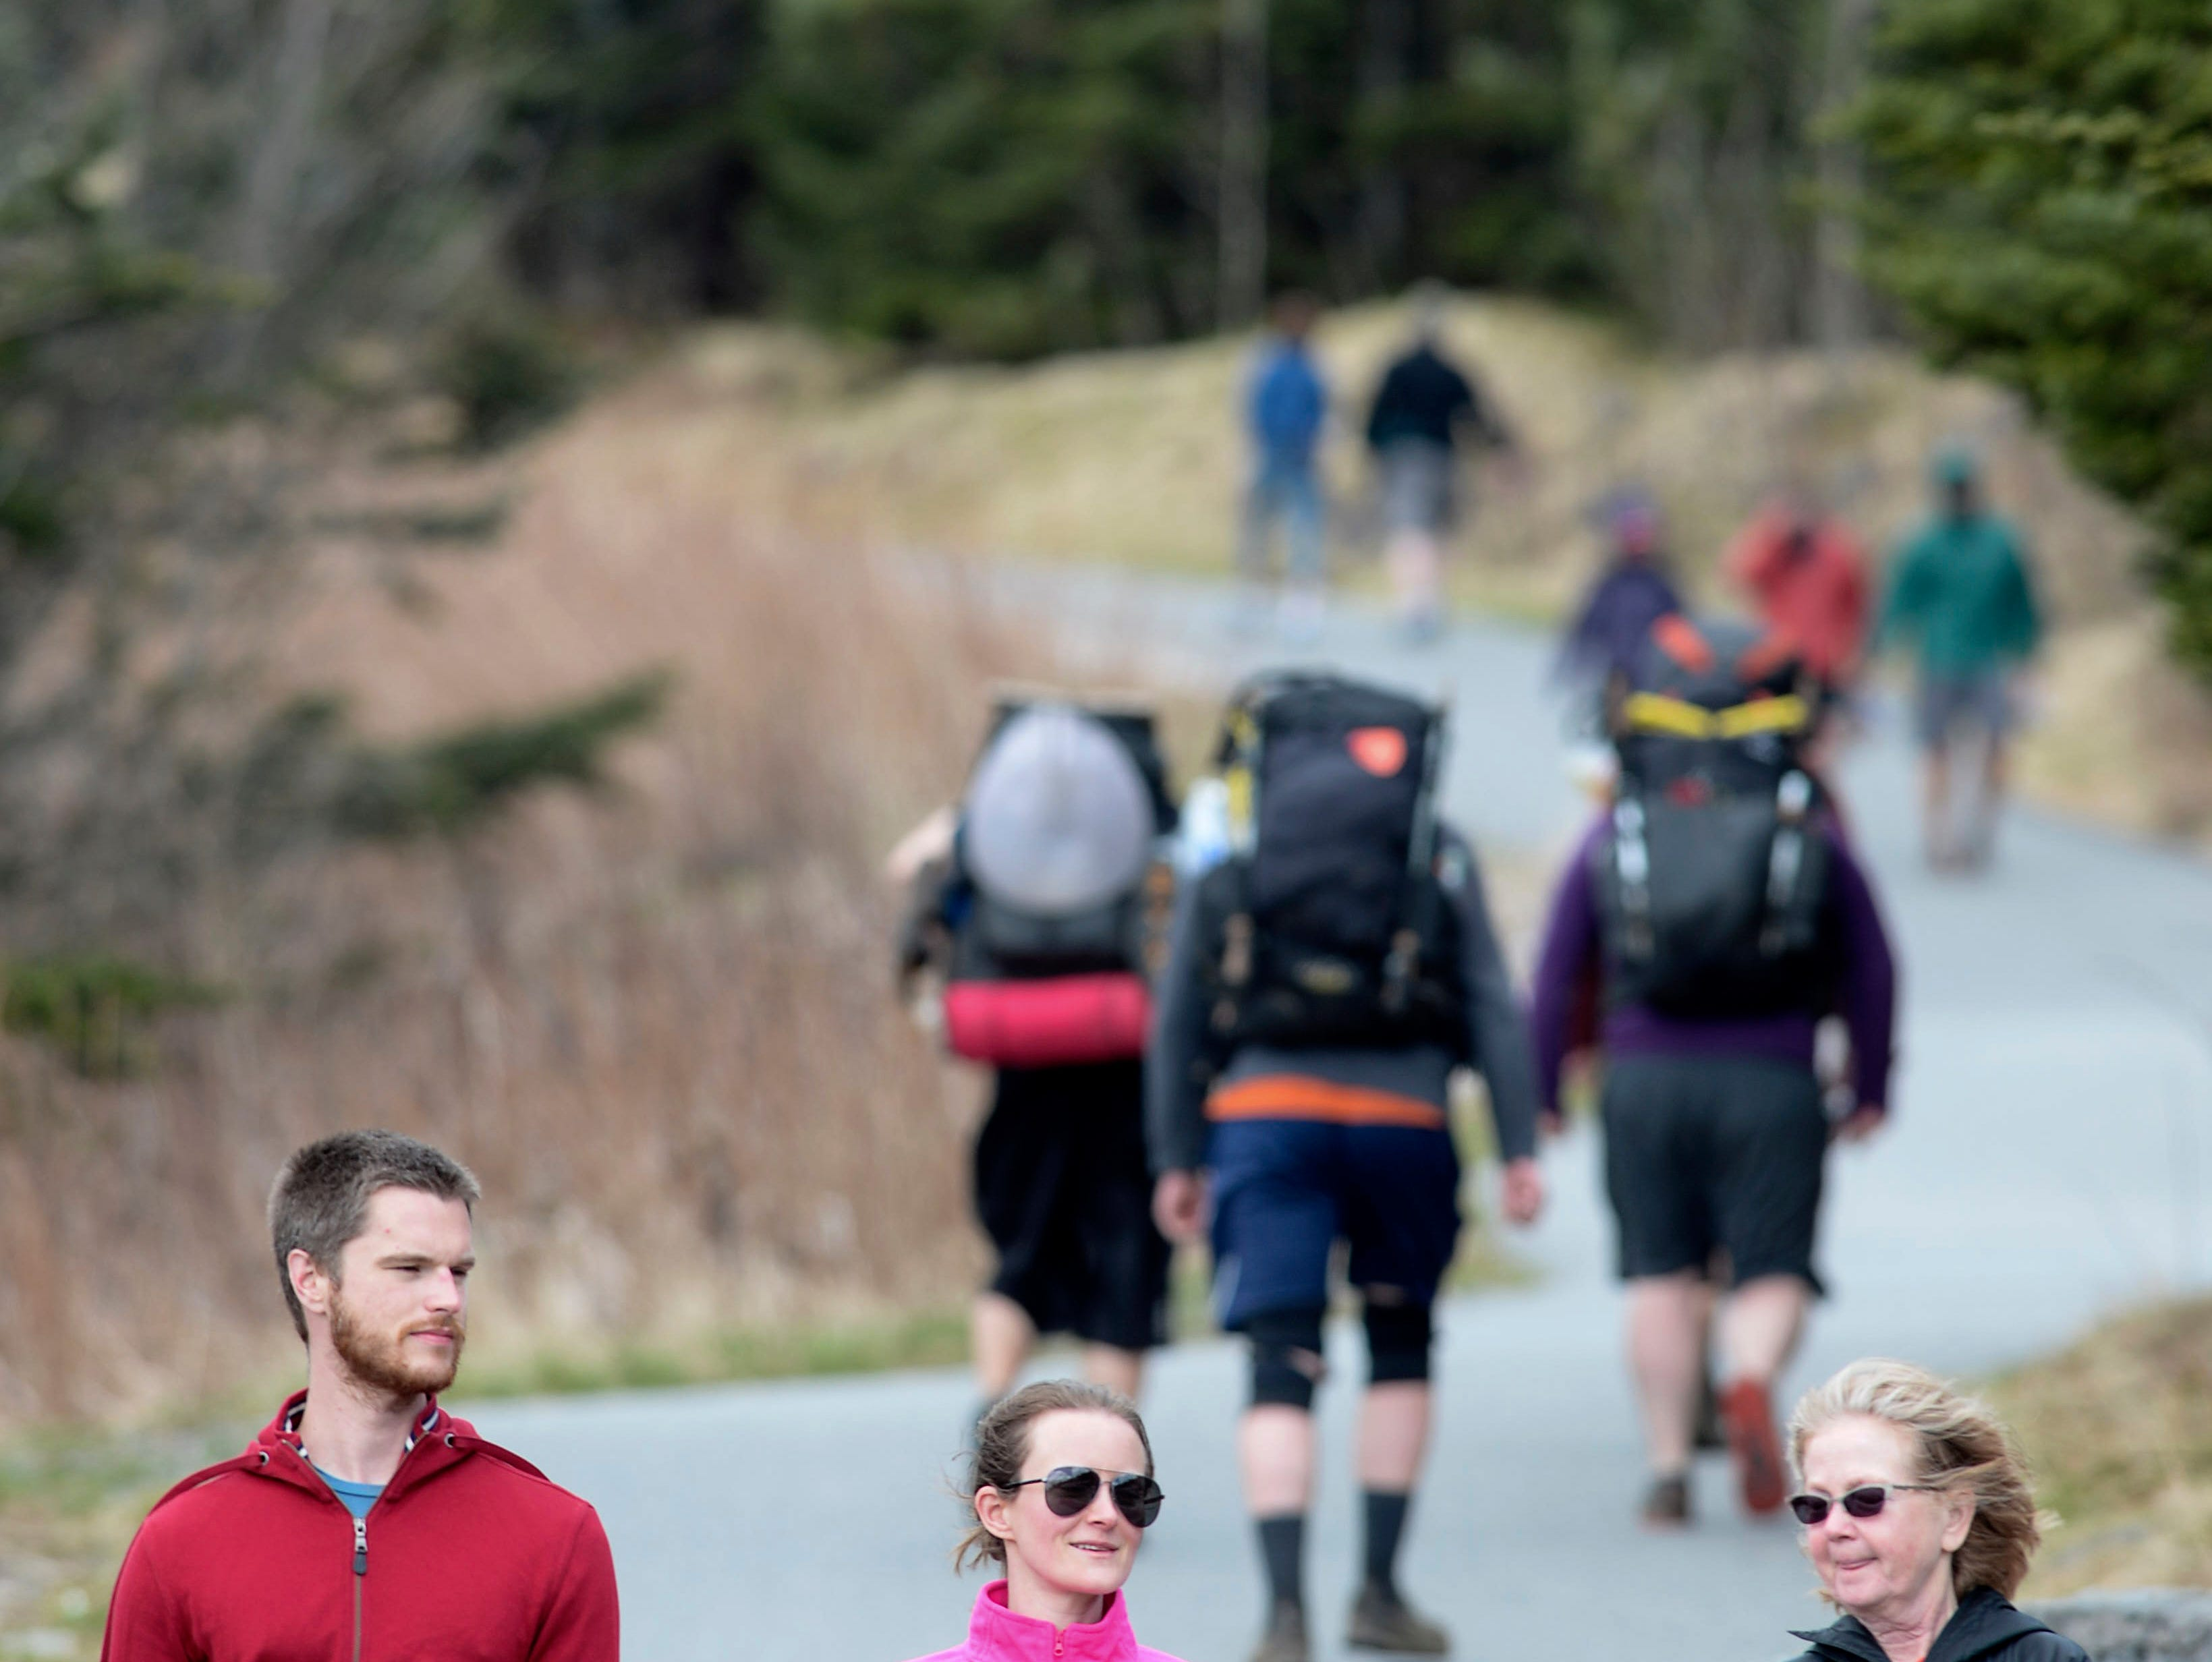 Hikers walk along the Clingmans Dome trail in Great Smoky Mountains National Park April 11, 2019.